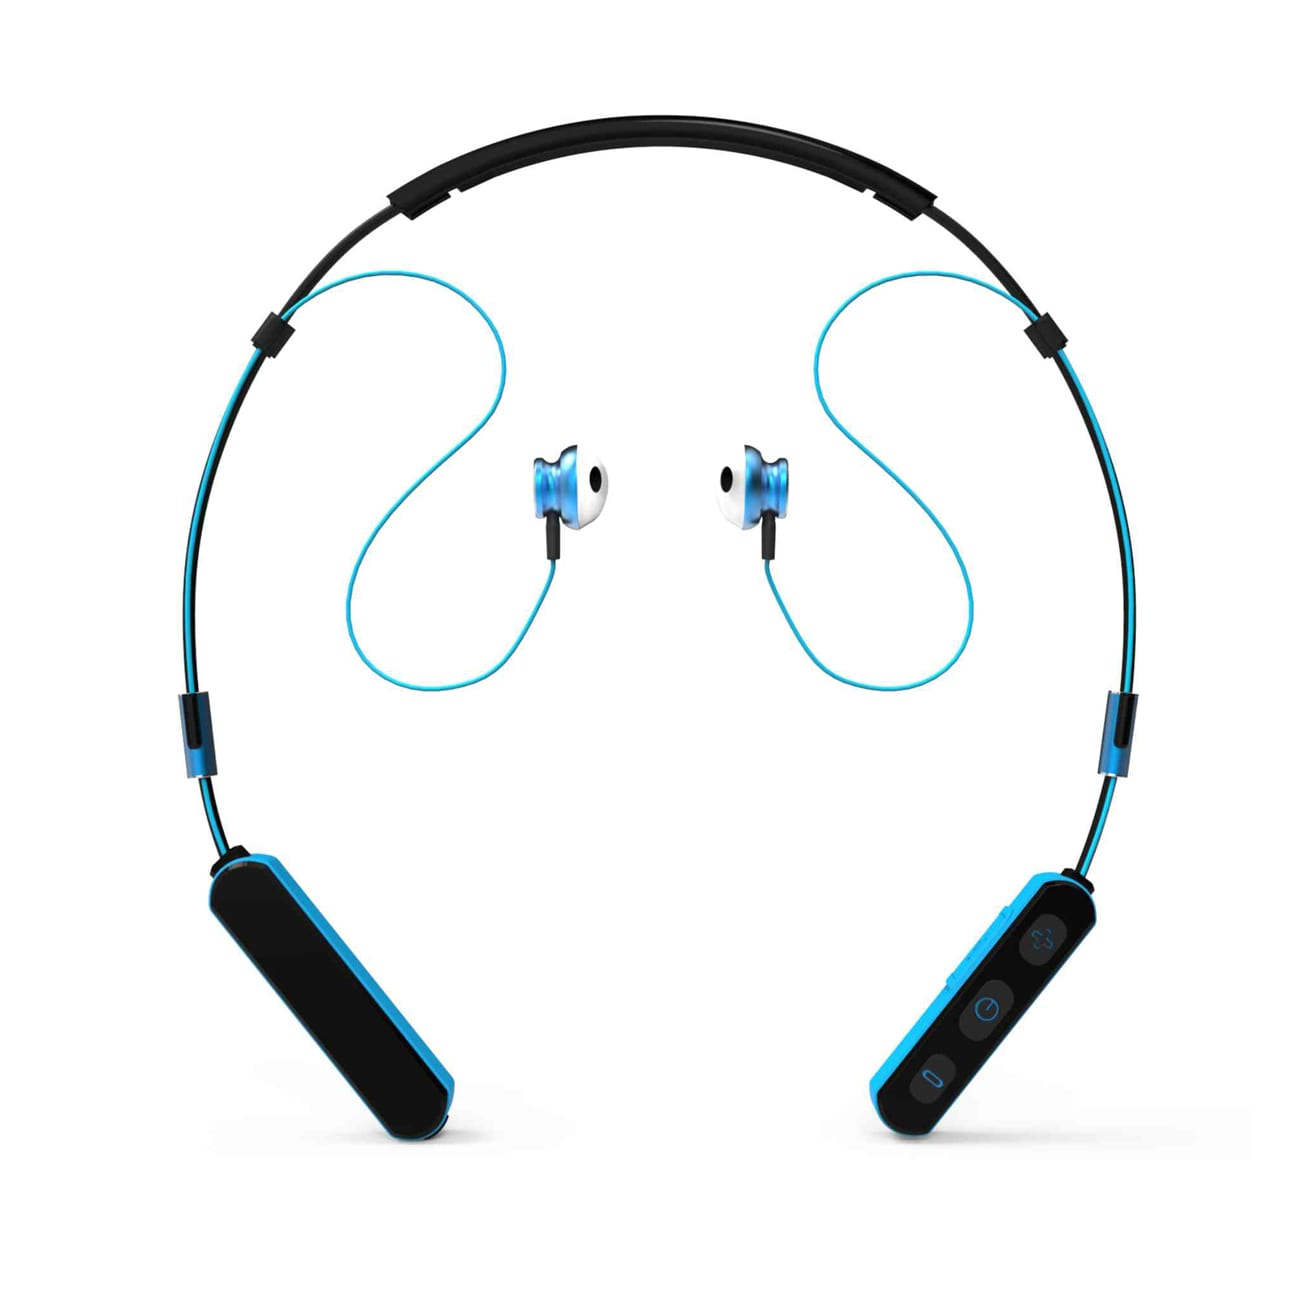 Neck Band Sport Bluetooth Earphones in Black and Blue